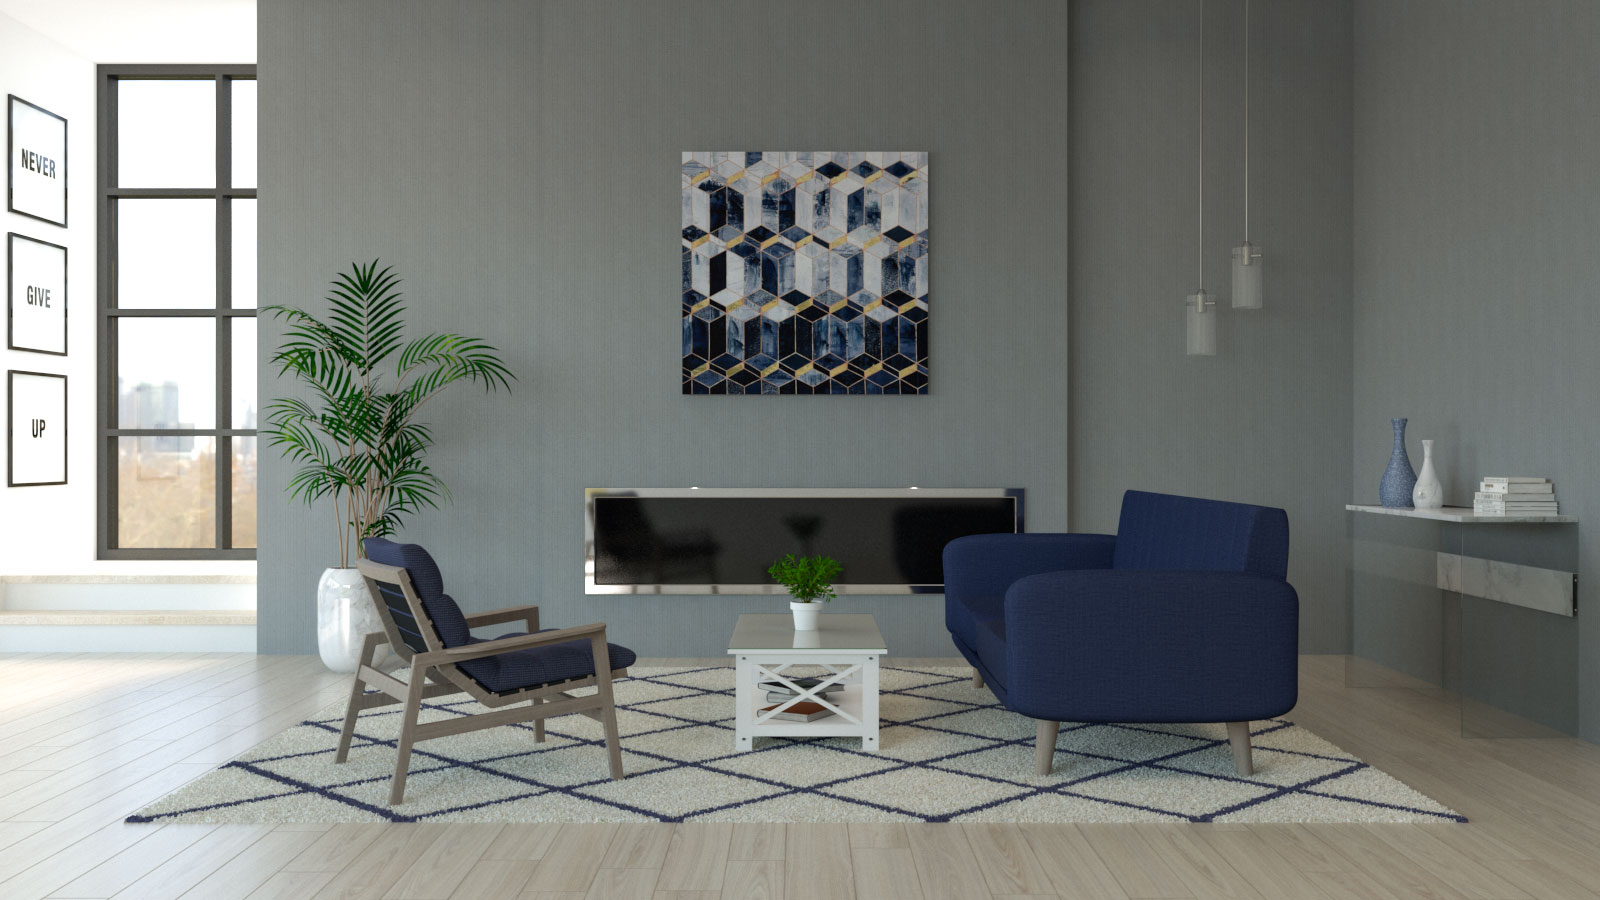 Living room with navy blue furniture and gray walls